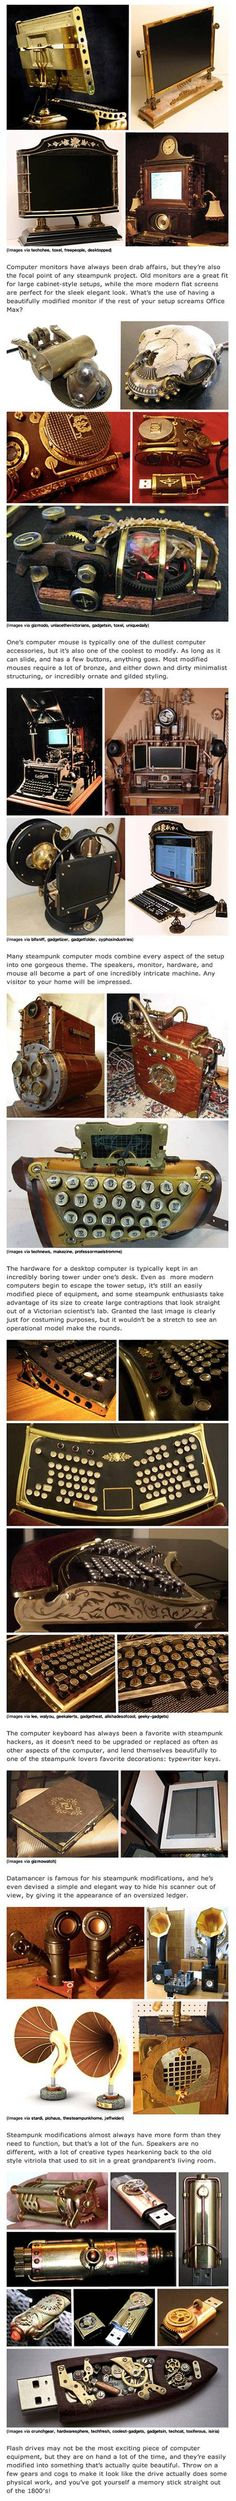 We've rounded up some cool and creative steampunk gadgets, computers.